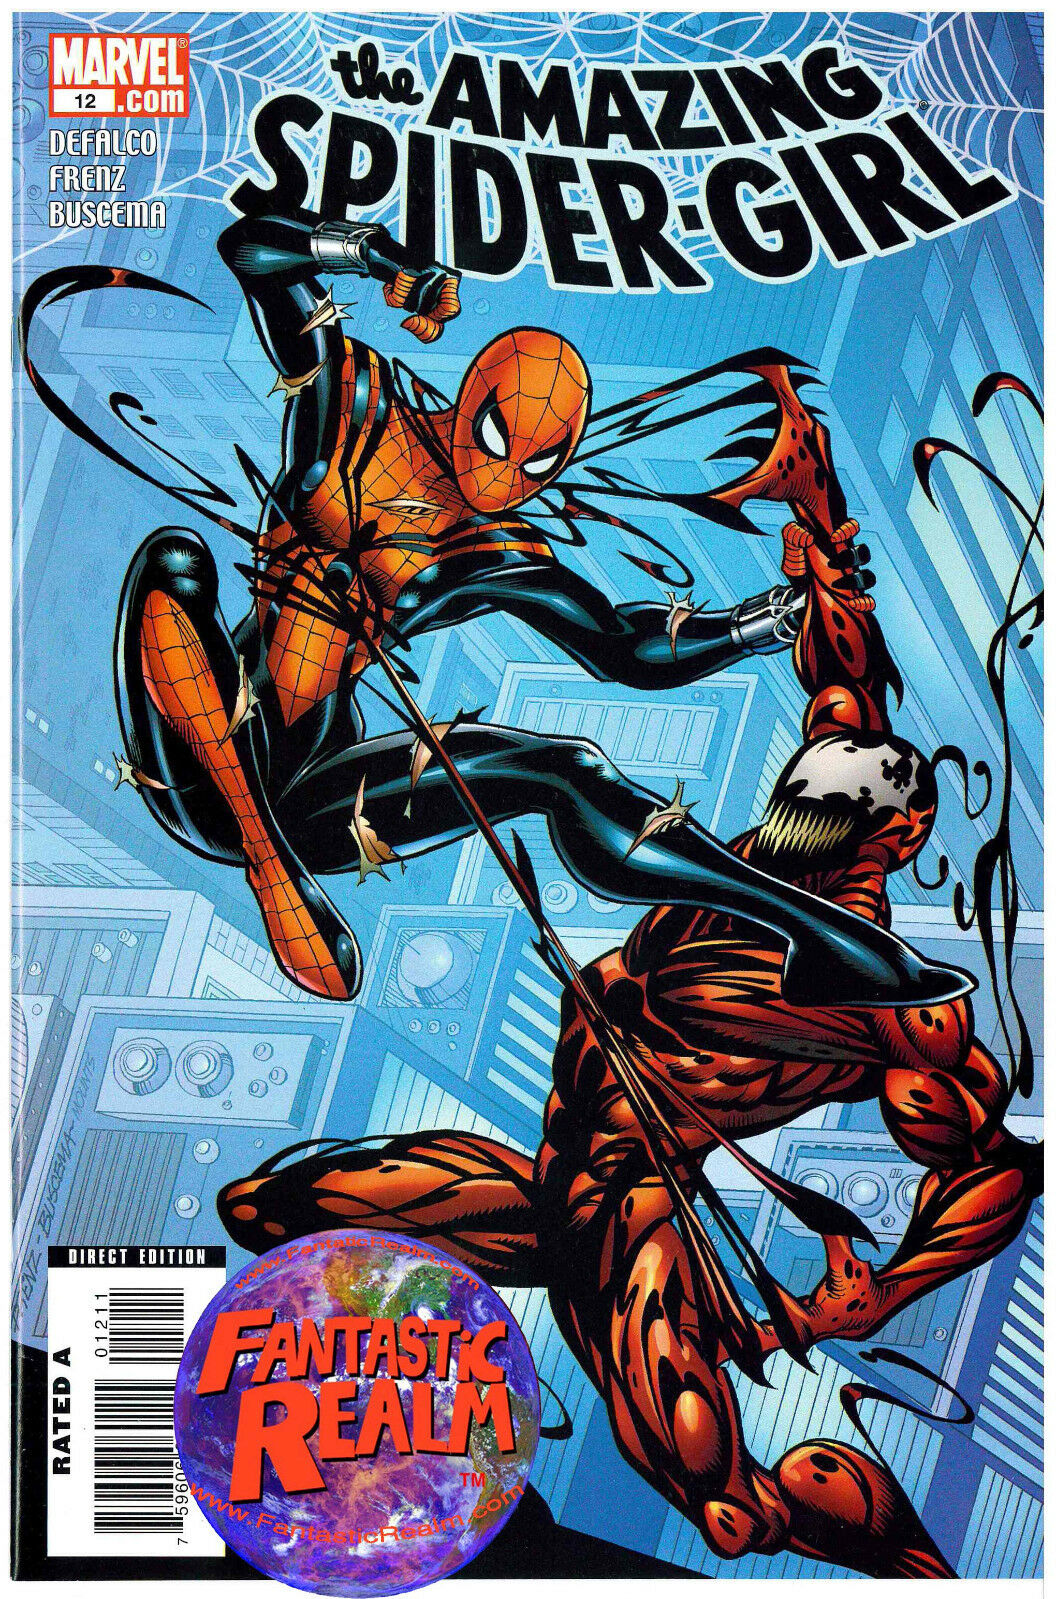 AMAZING SPIDER-GIRL #12 CARNAGE COVER, 13 & 13 ZOMBIE VARIANT MARVEL COMICS